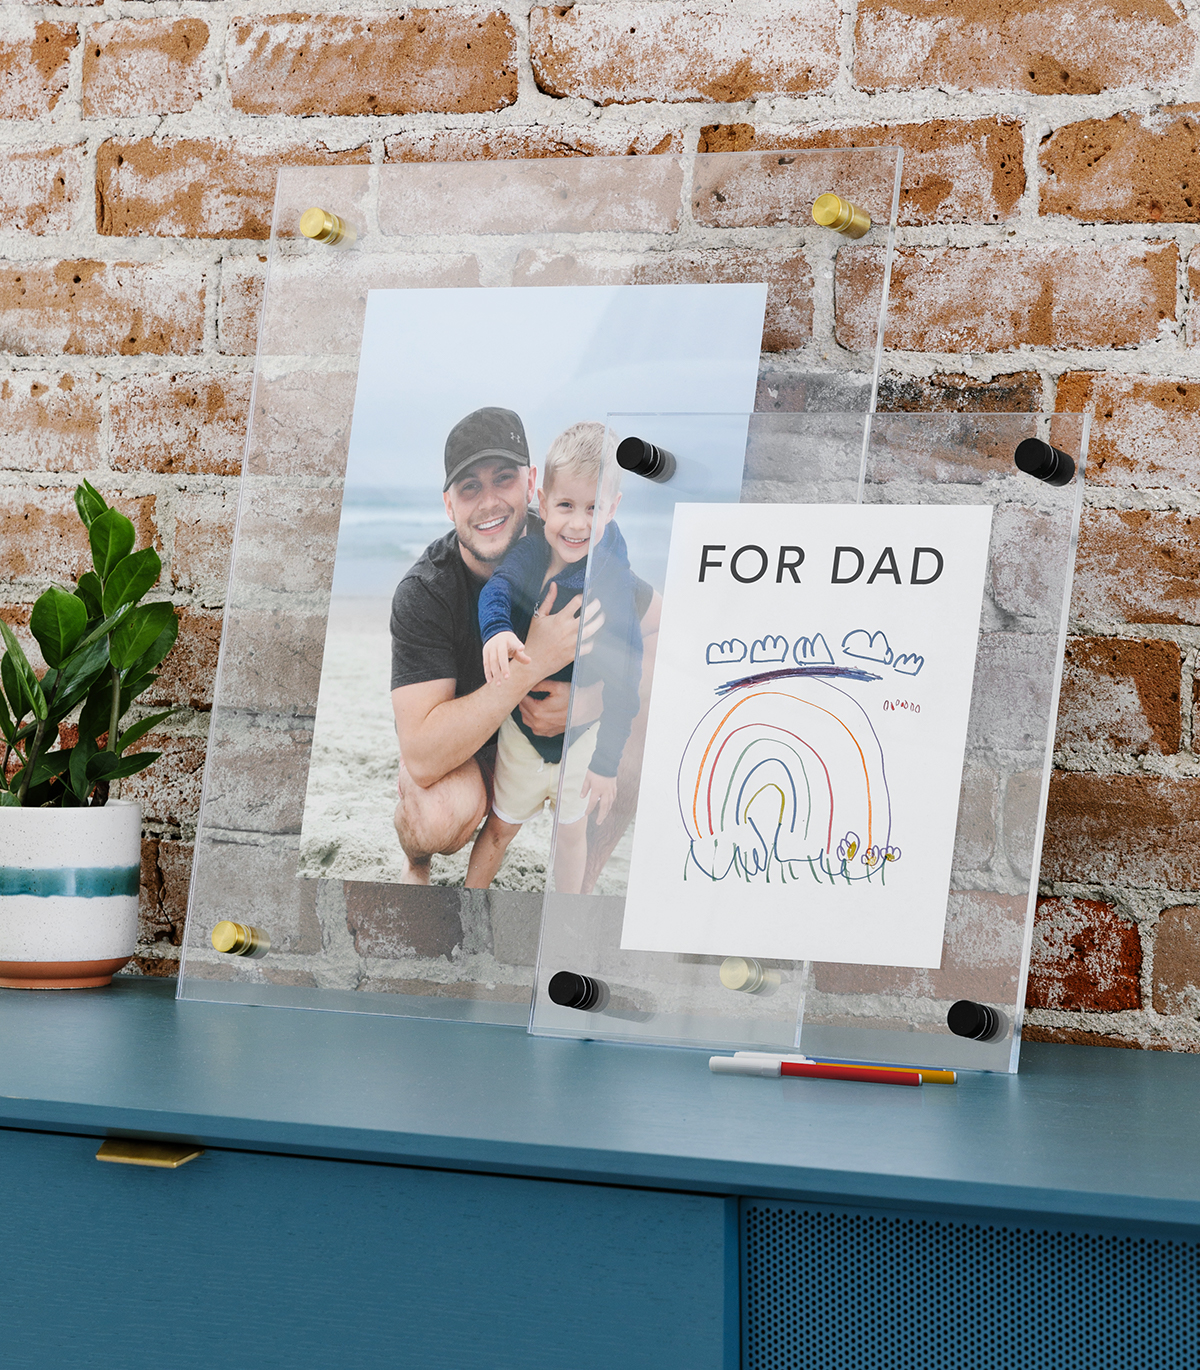 Artifact Uprising Floating Frame with words for dad featuring children's drawing of a rainbow and clouds